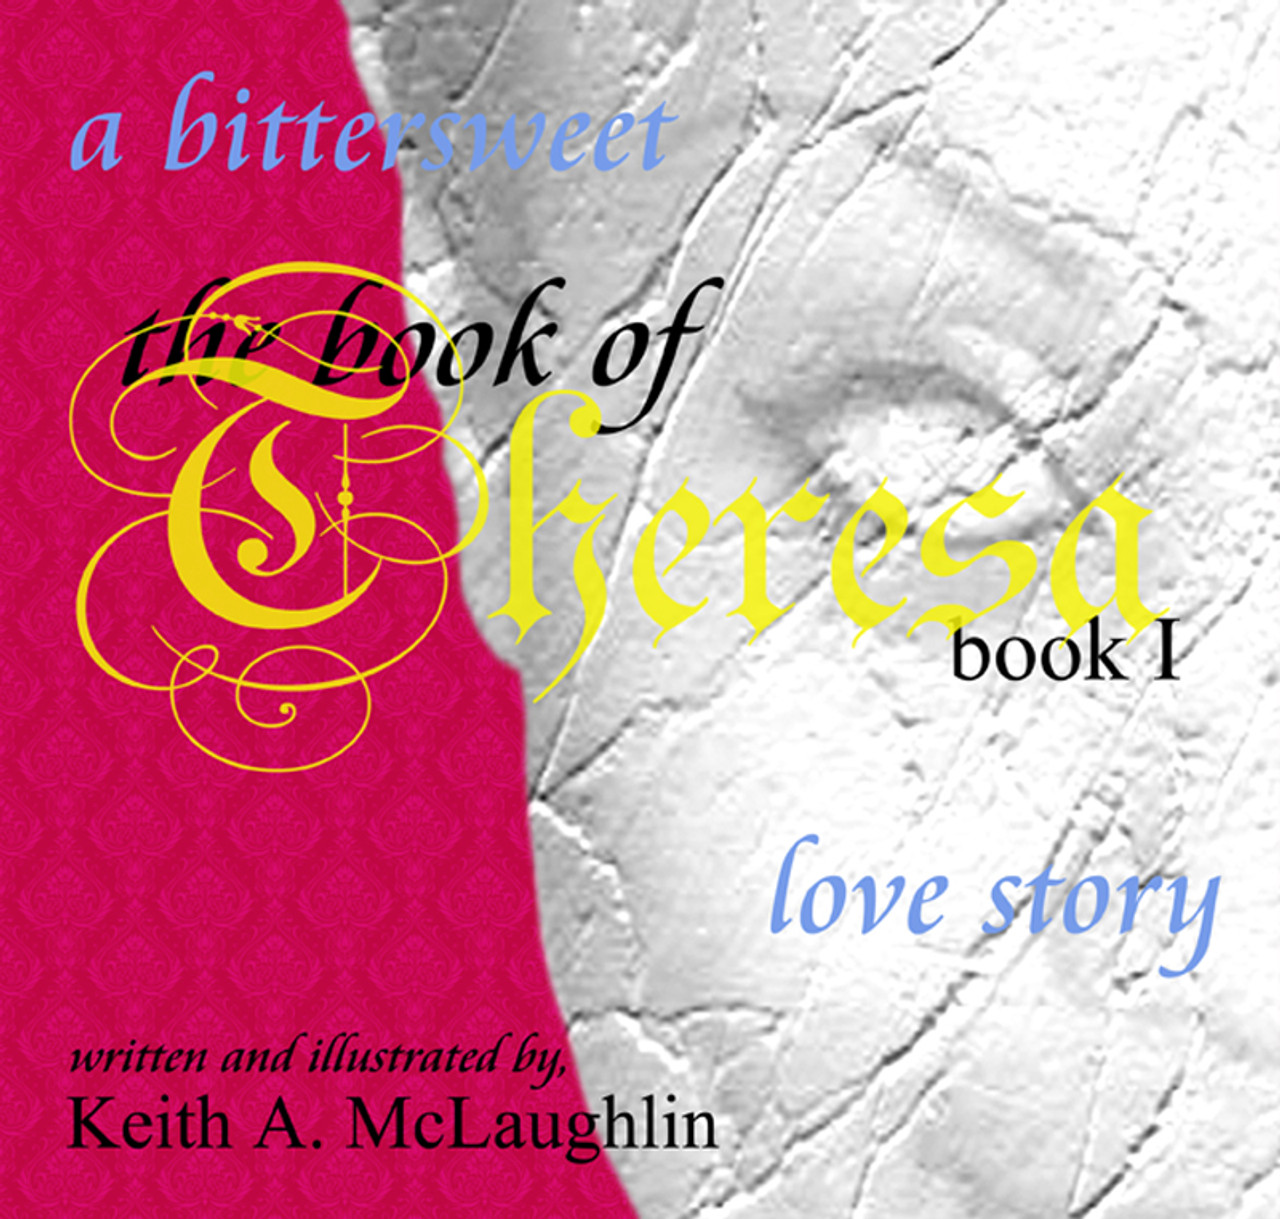 the book of Theresa: book I: a bittersweet love story